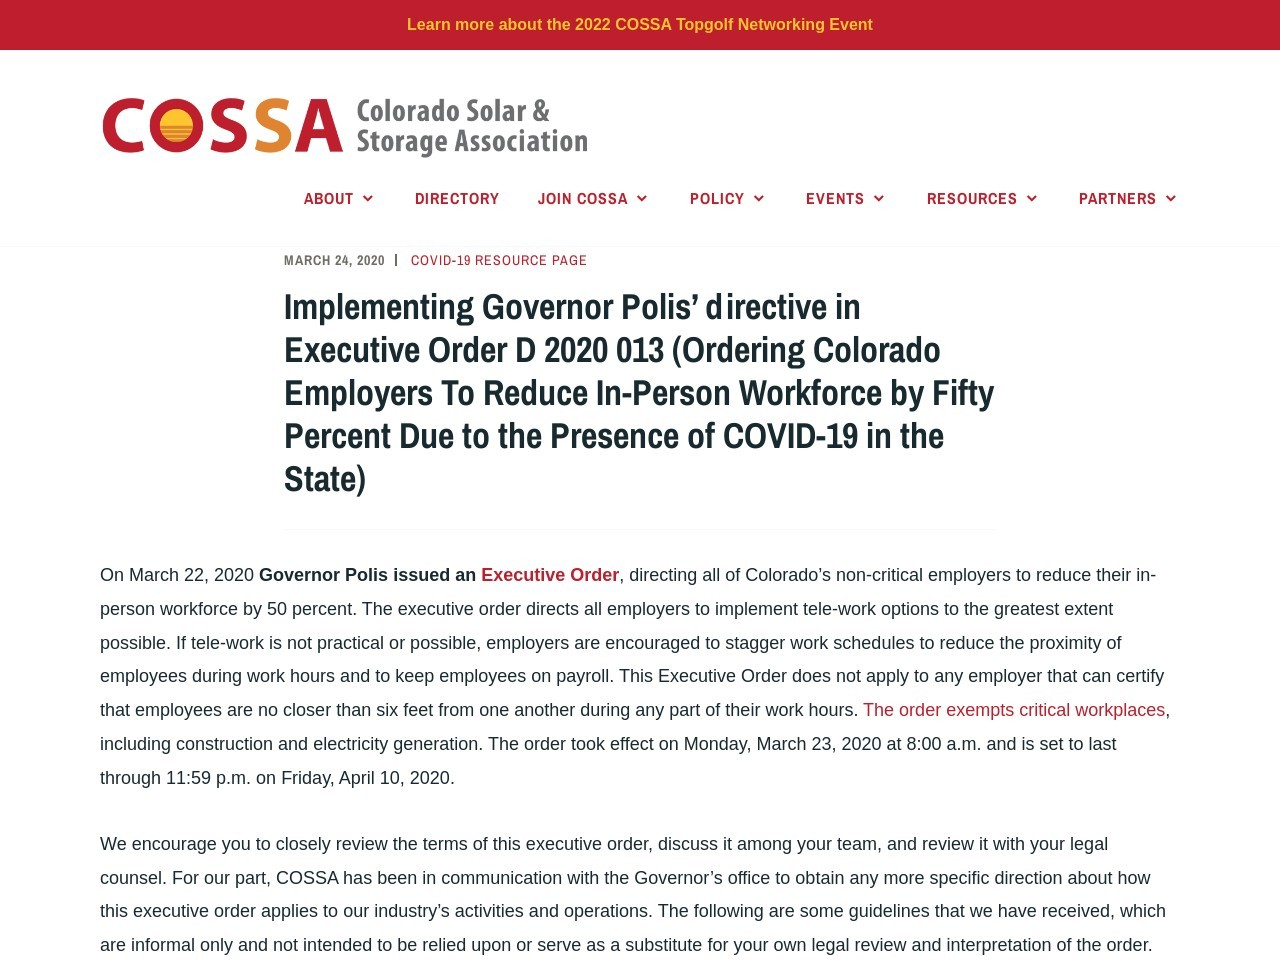 Implementing Governor Polis' directive in Executive Order D 2020 013 (Ordering Colorado Employers To Reduce In-Person Workforce by Fifty Percent Due to the Presence of COVID-19 in the State)